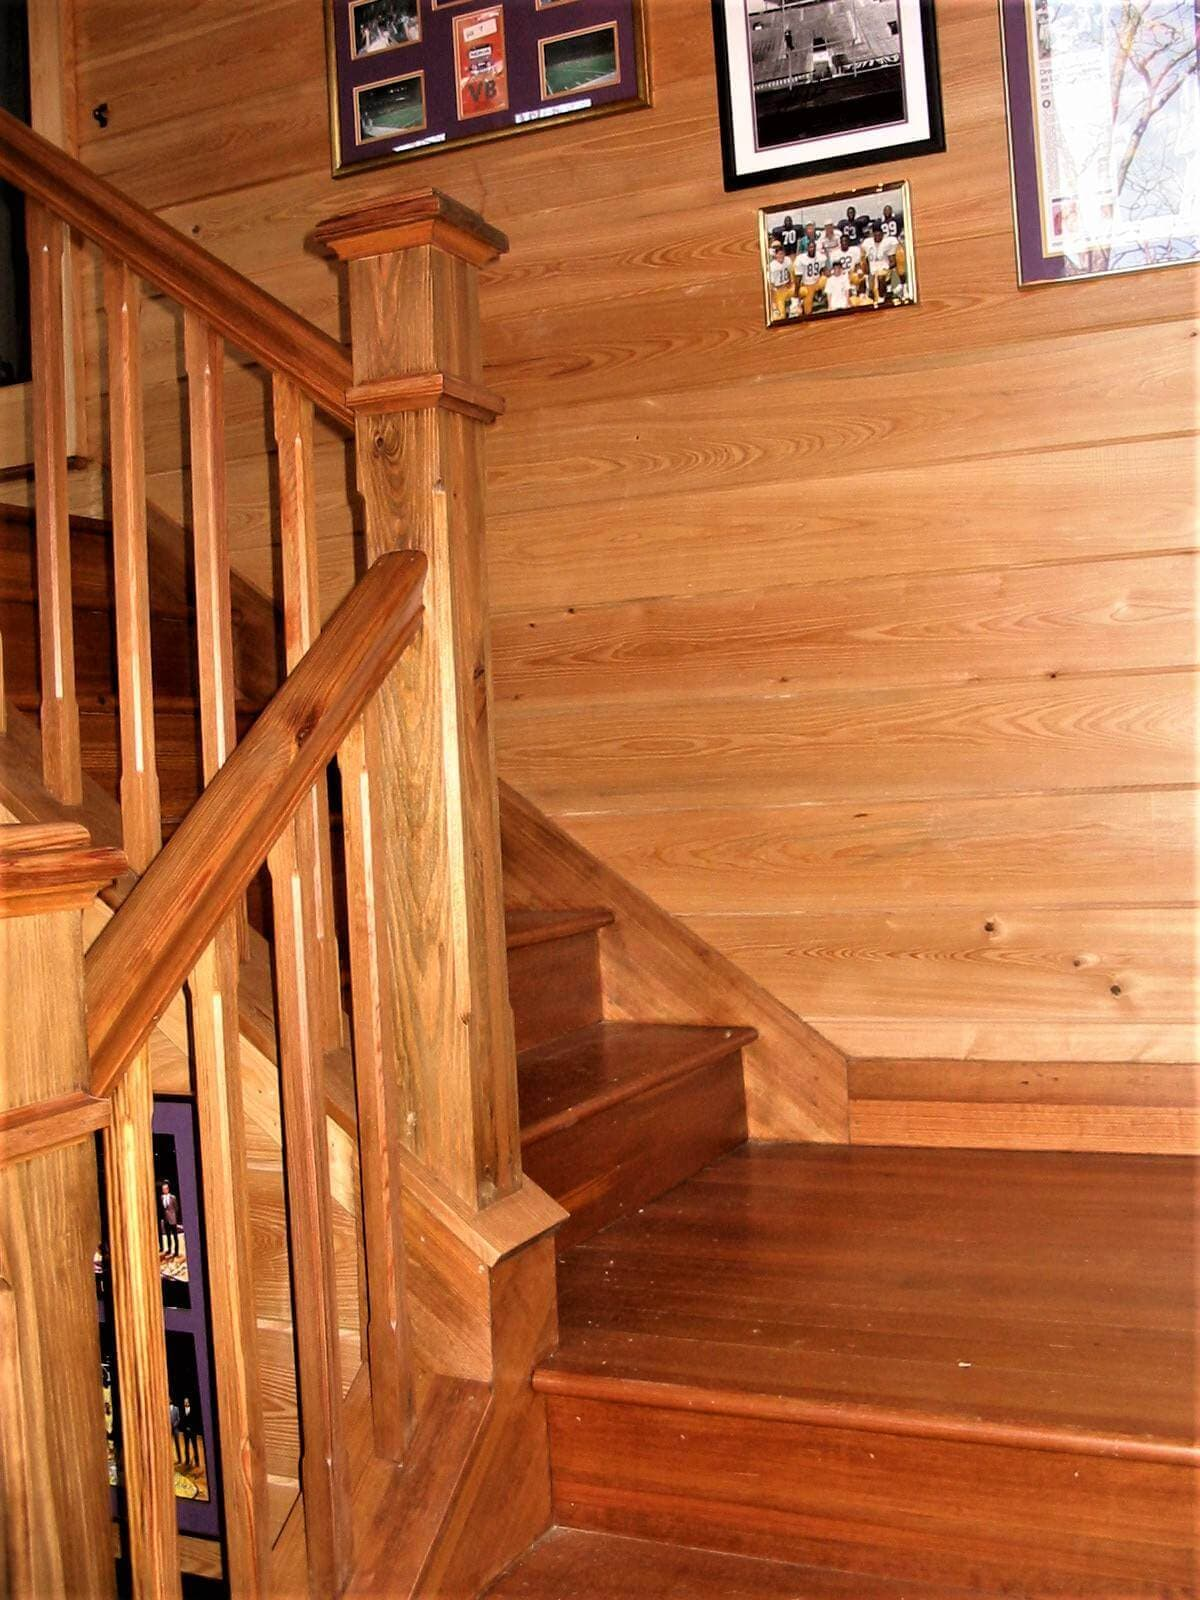 heart pine stairway landing, post and banister with heart pine  horizontal wall cladding